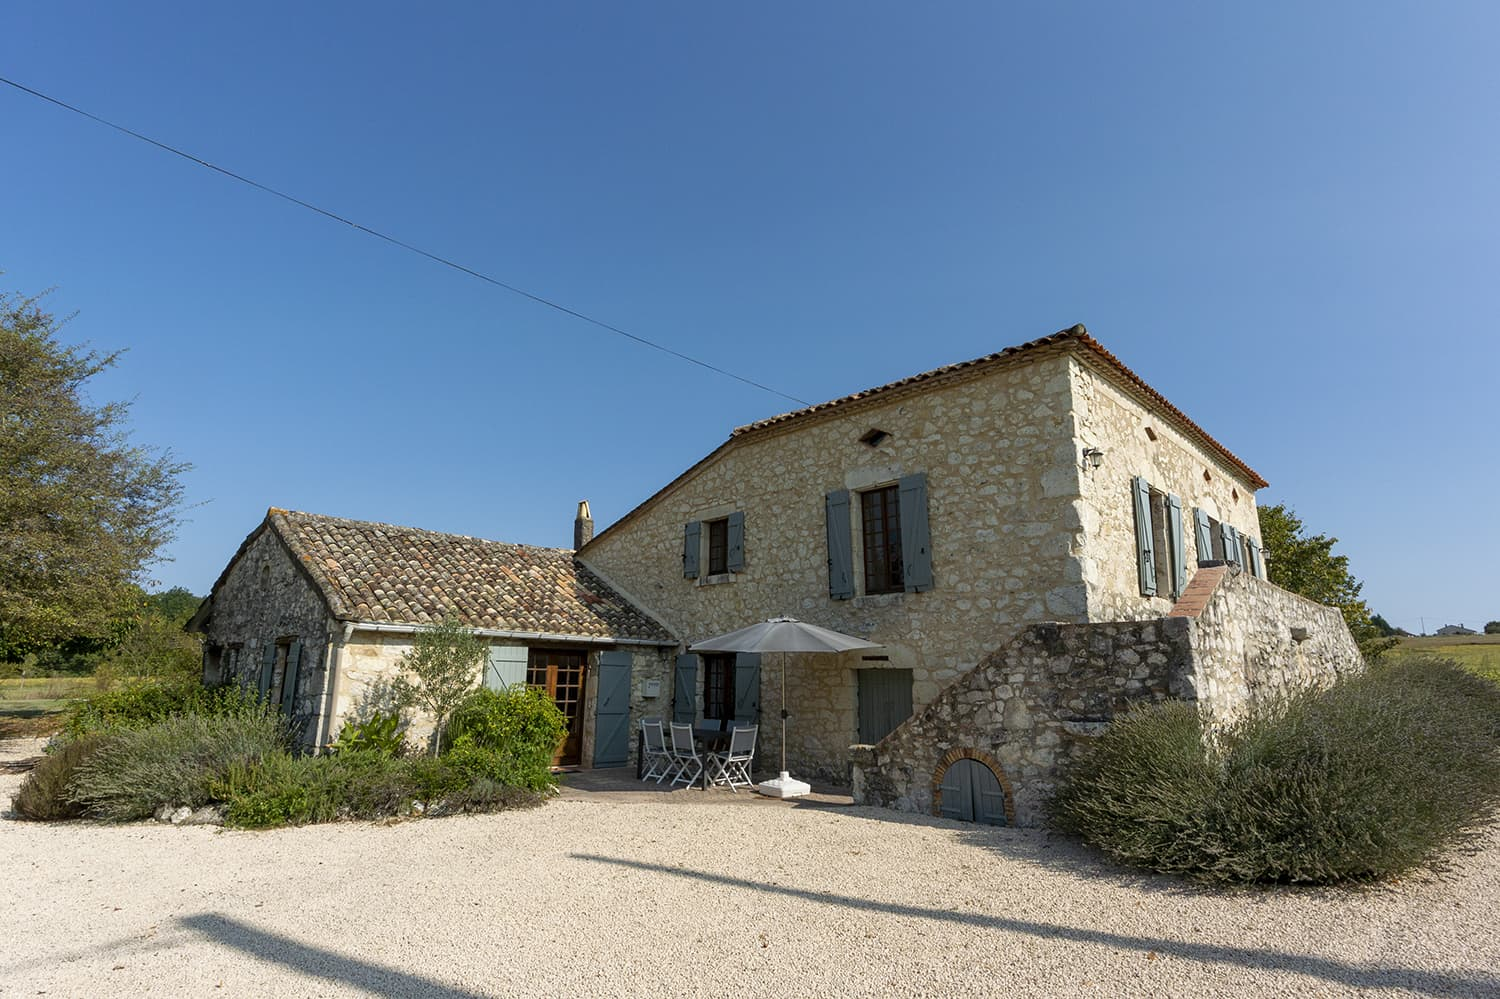 Holiday accommodation in Saint-Eutrope-de-Born